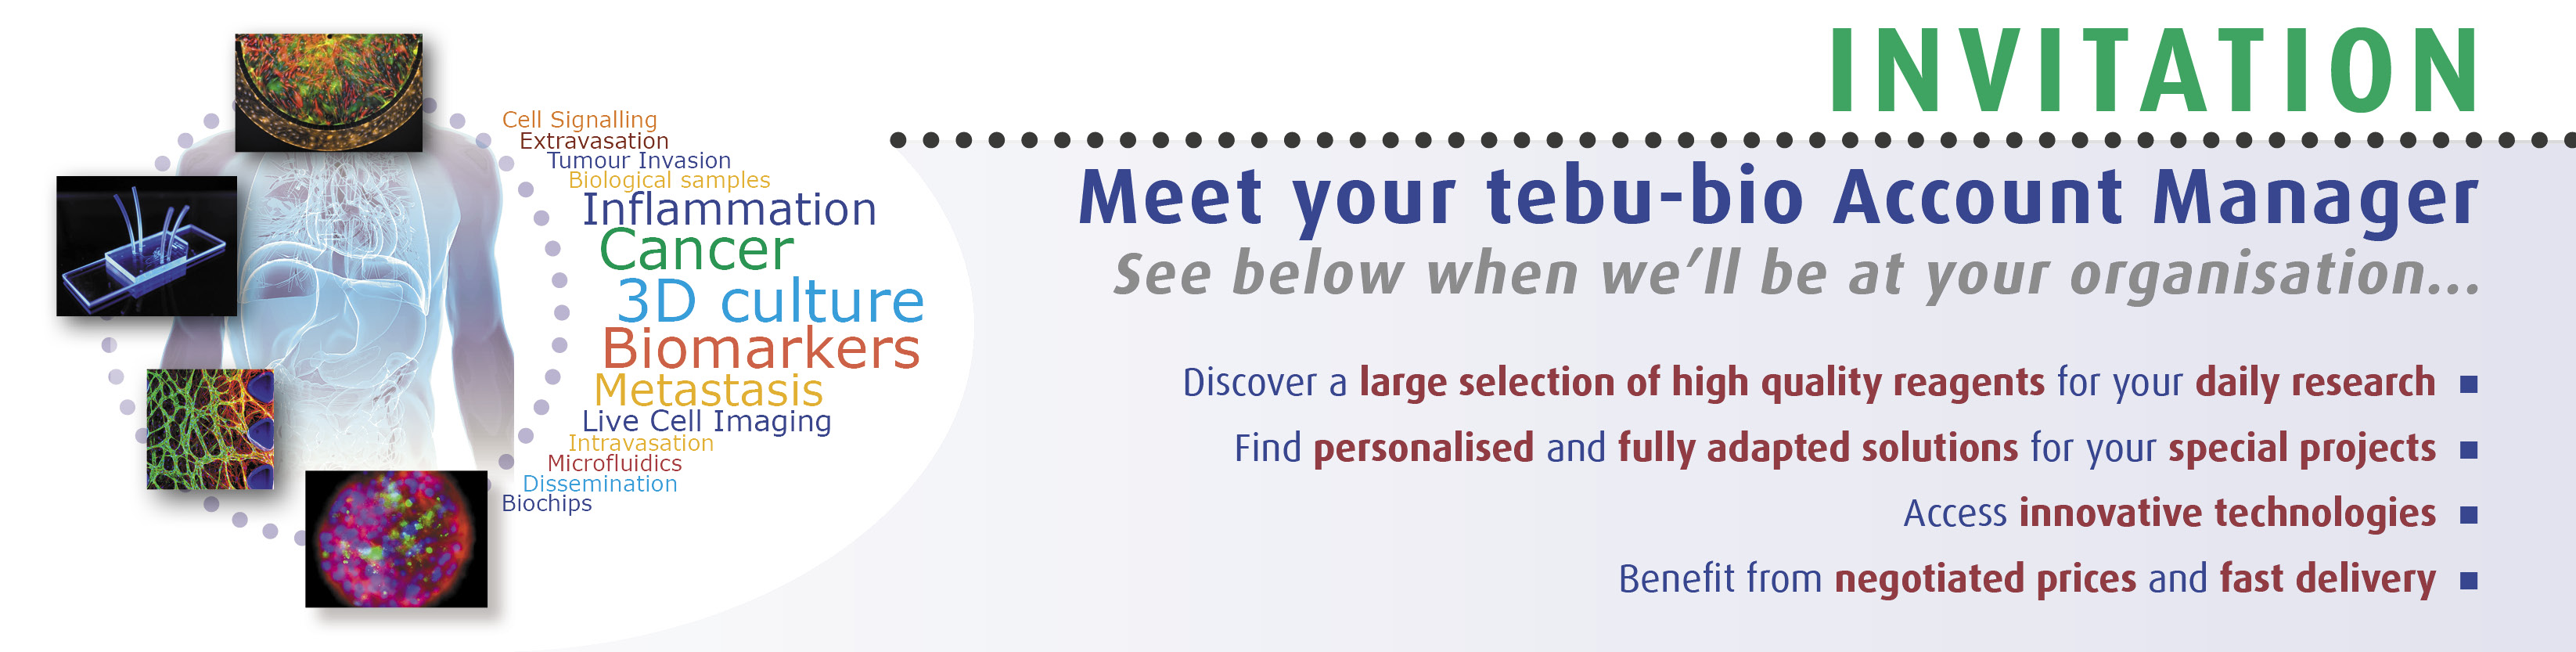 tebu-bio will be at Meet your tebu-bio Account Manager - Tytgat Institute at the AMC